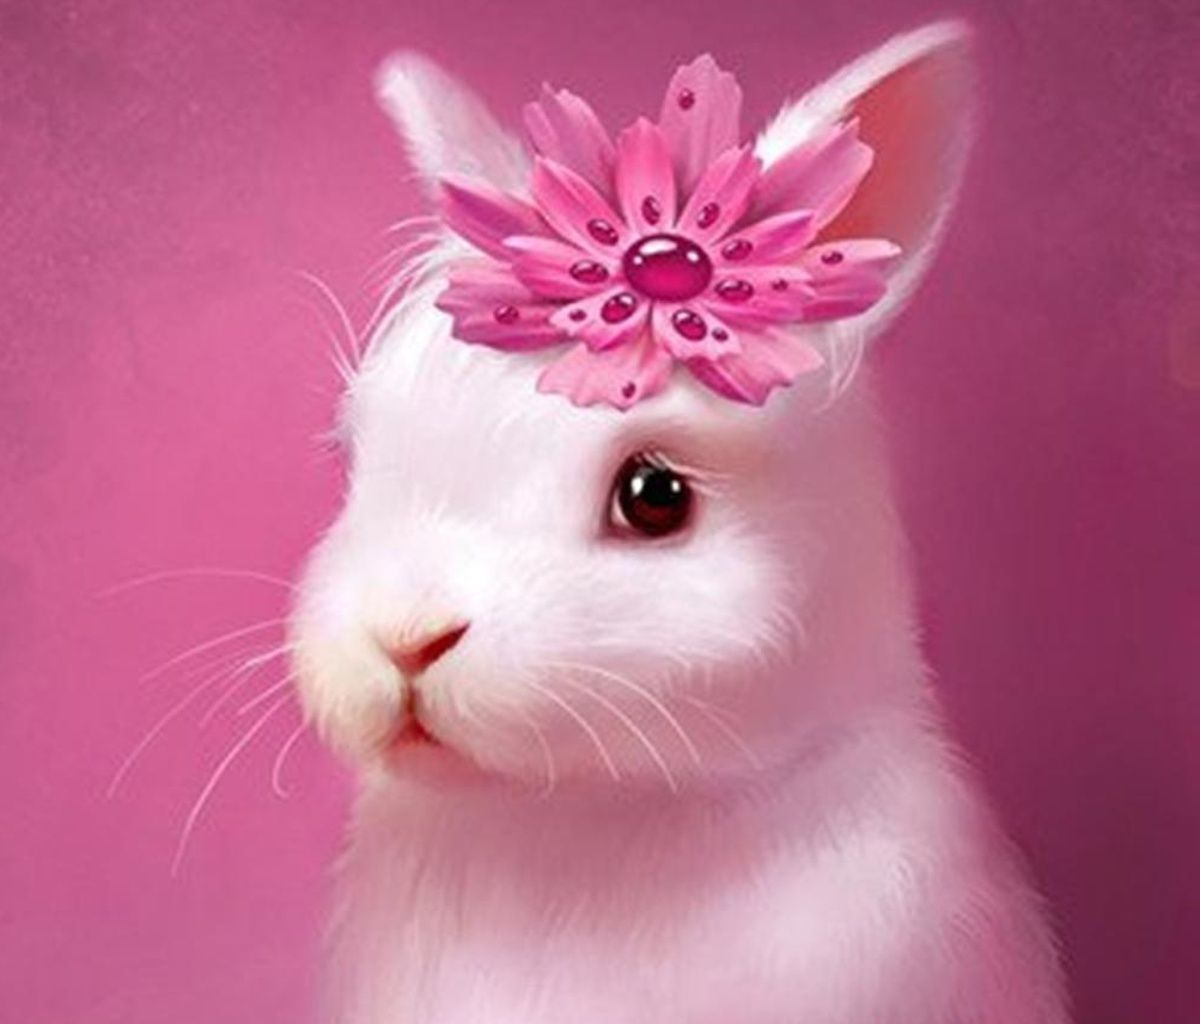 Pin By Lady Basil S Inspiring Colors On Spring Easter In Pink Cute Baby Bunnies Cute Bunny Cute Baby Animals